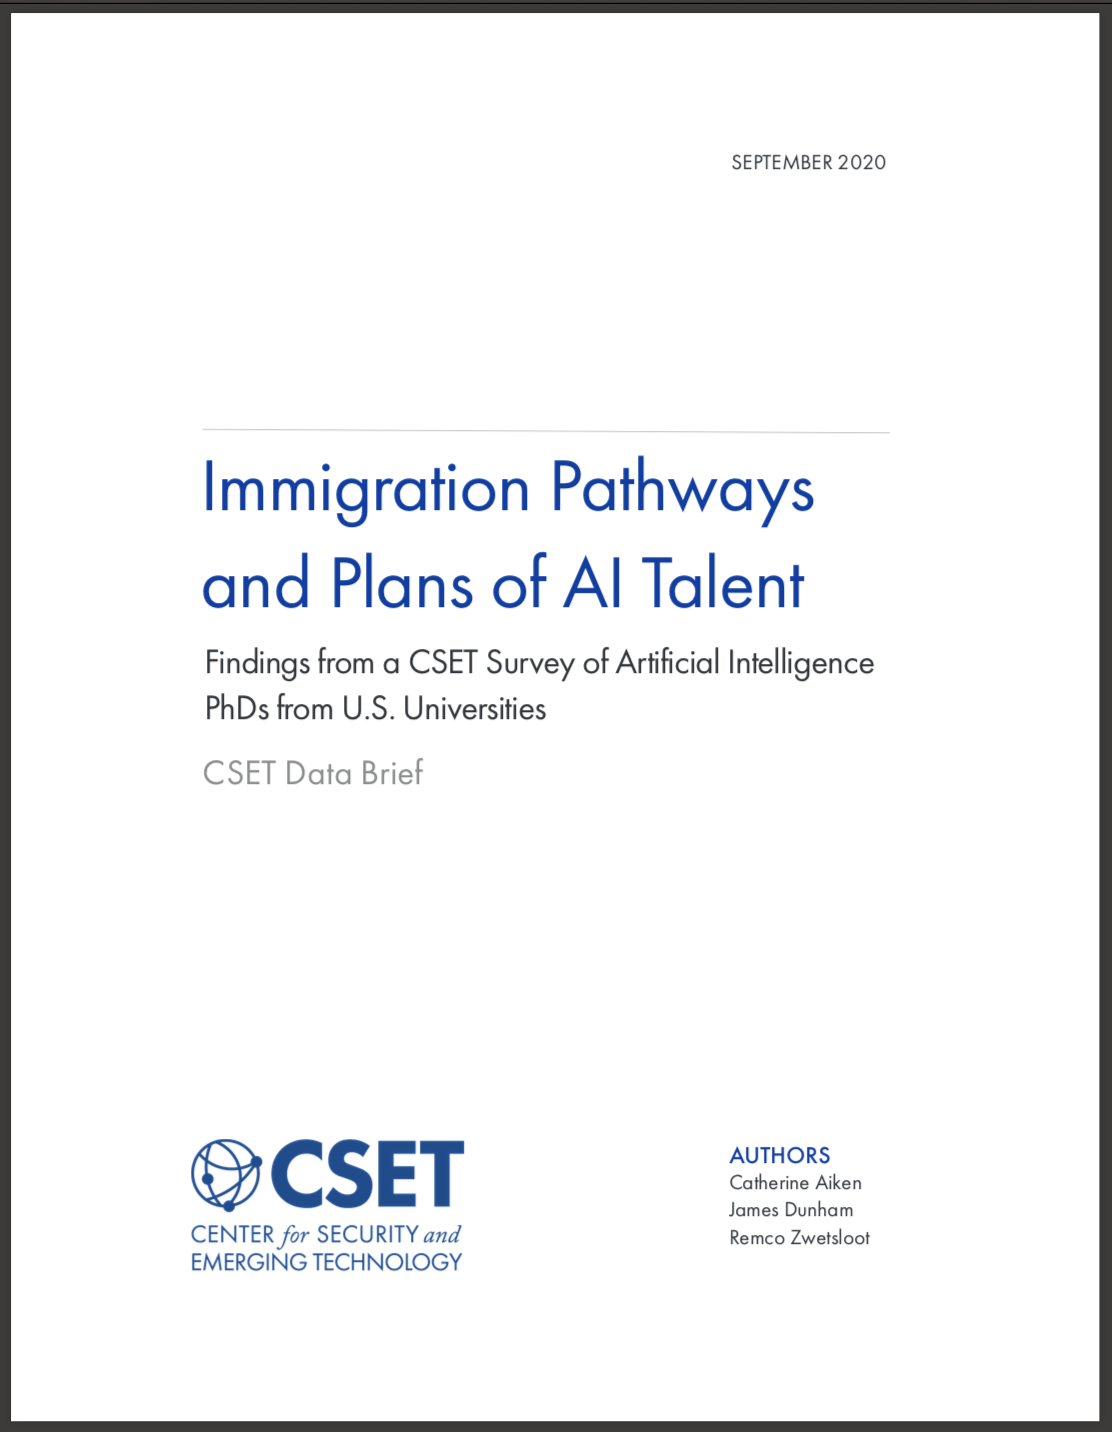 Immigration Pathways and Plans of AI Talent